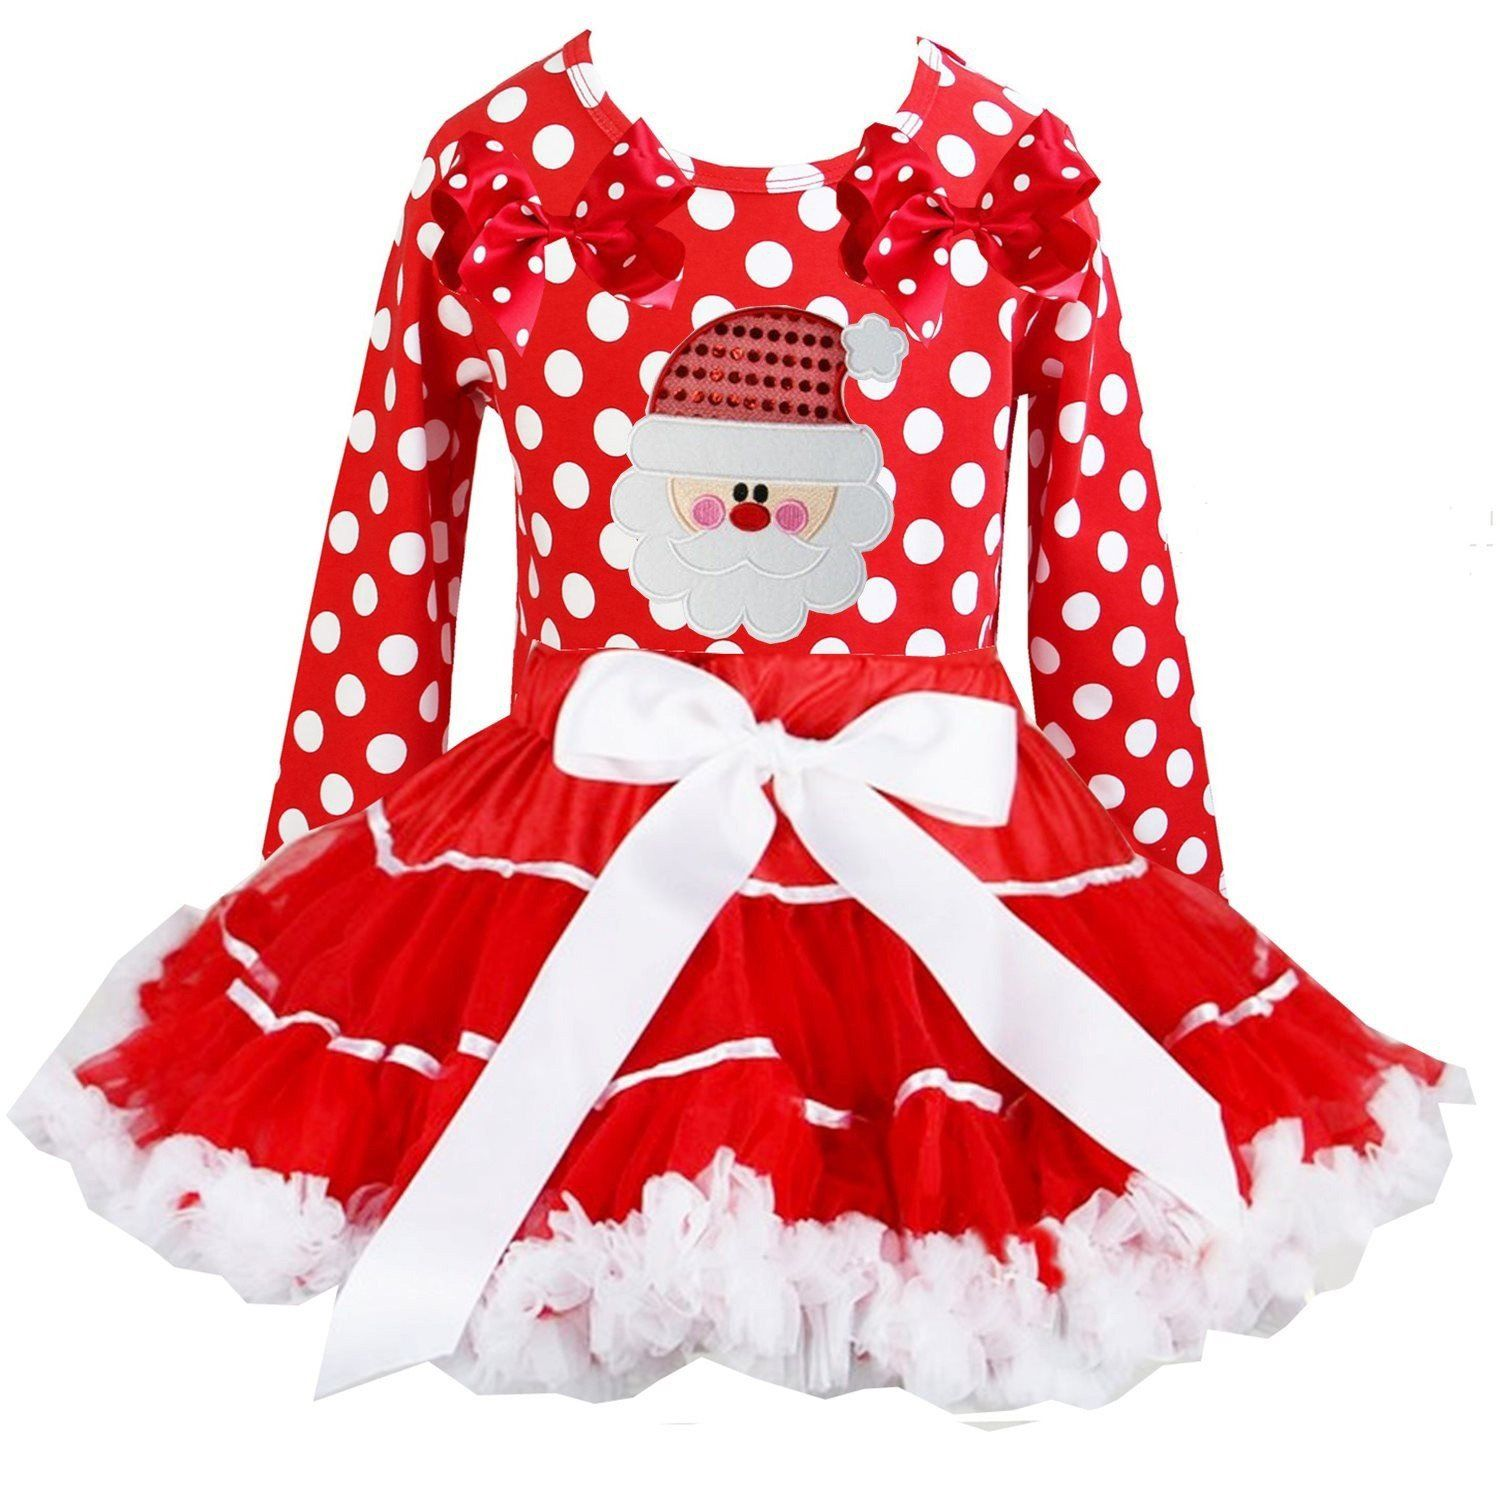 Kirei Sui Red White Satin Binding Pettiskirt & Xmas Santa